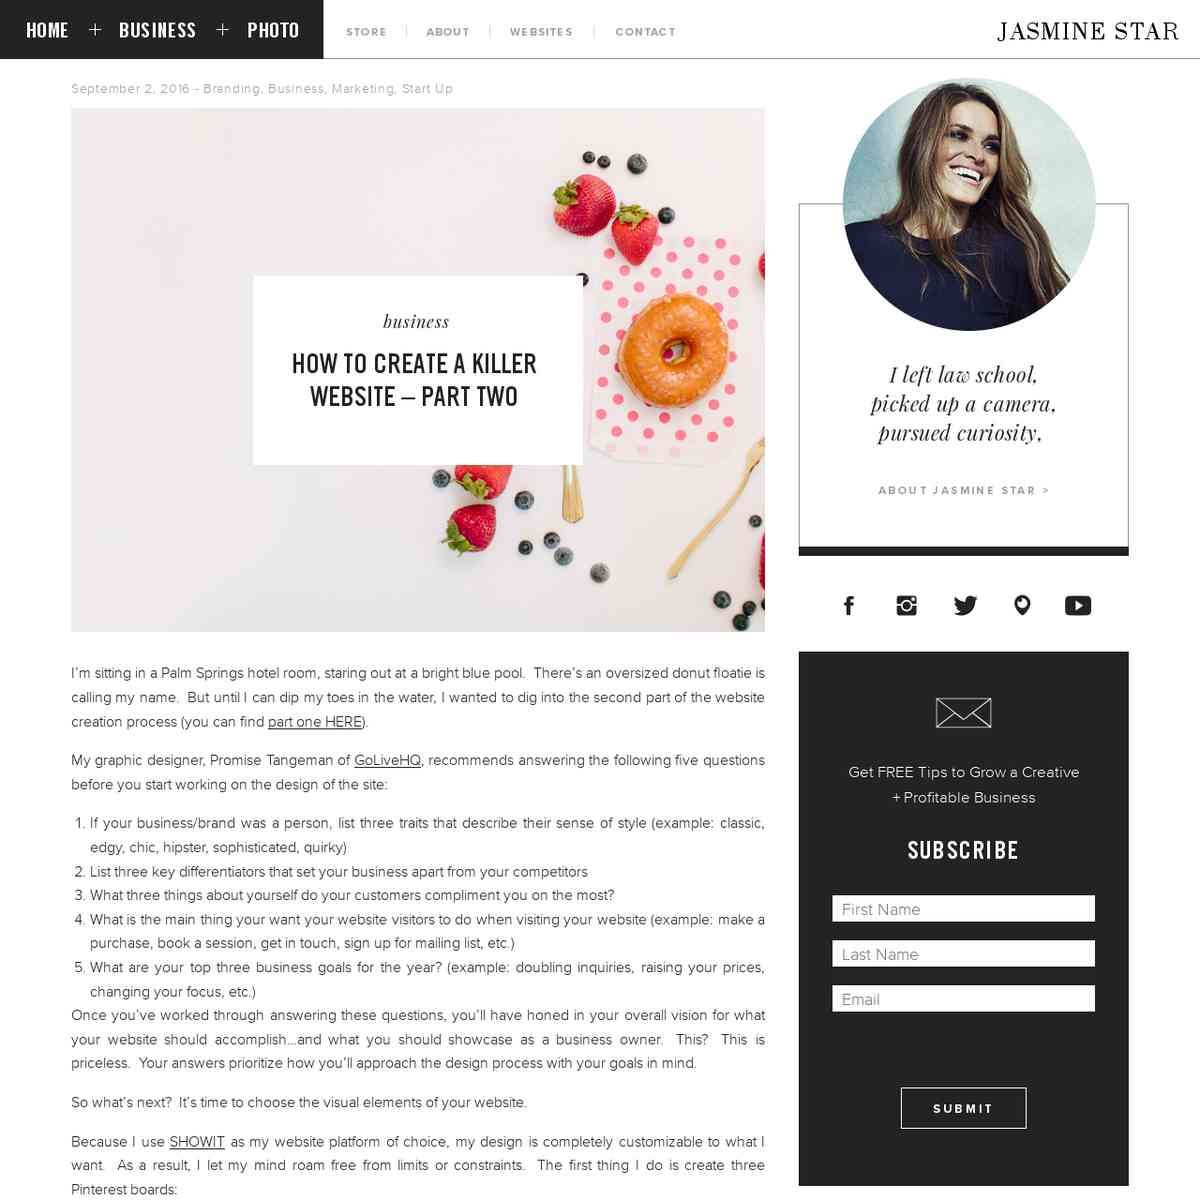 Jasmine Star   How to Create a Killer Website – Part Two